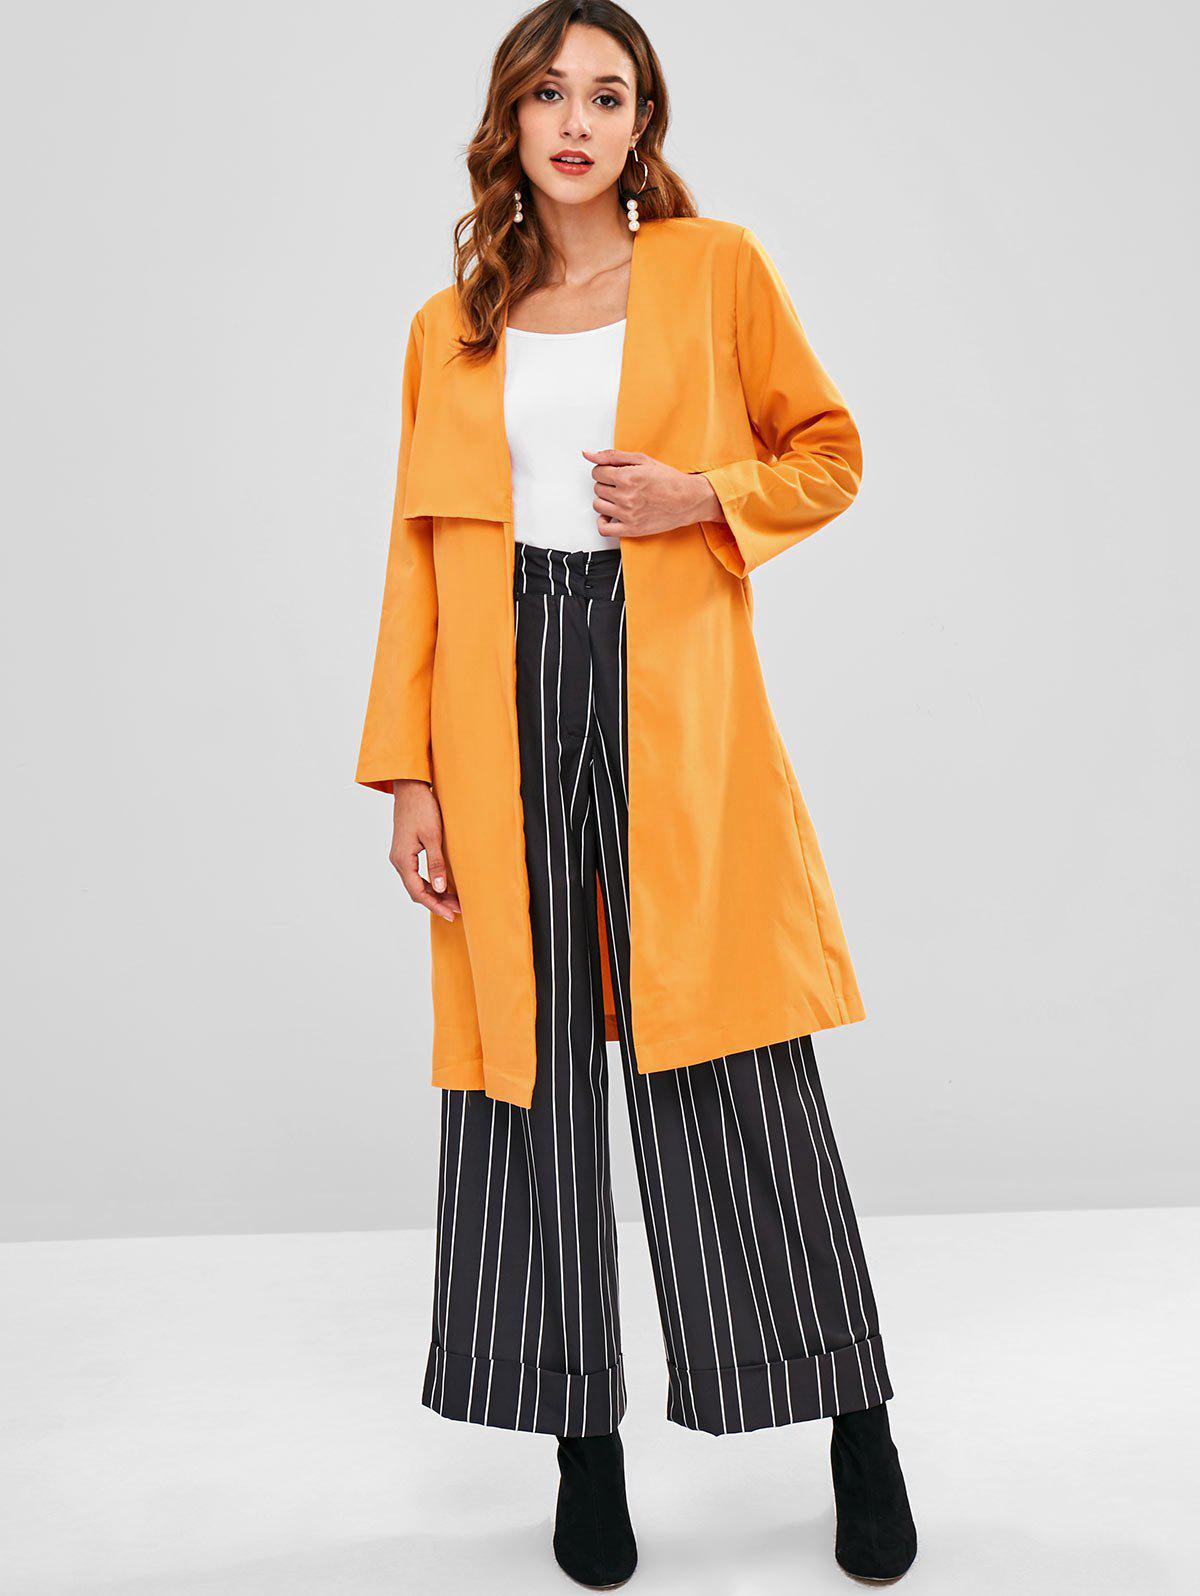 Fente Sur Le Dos Belted Trench Coat